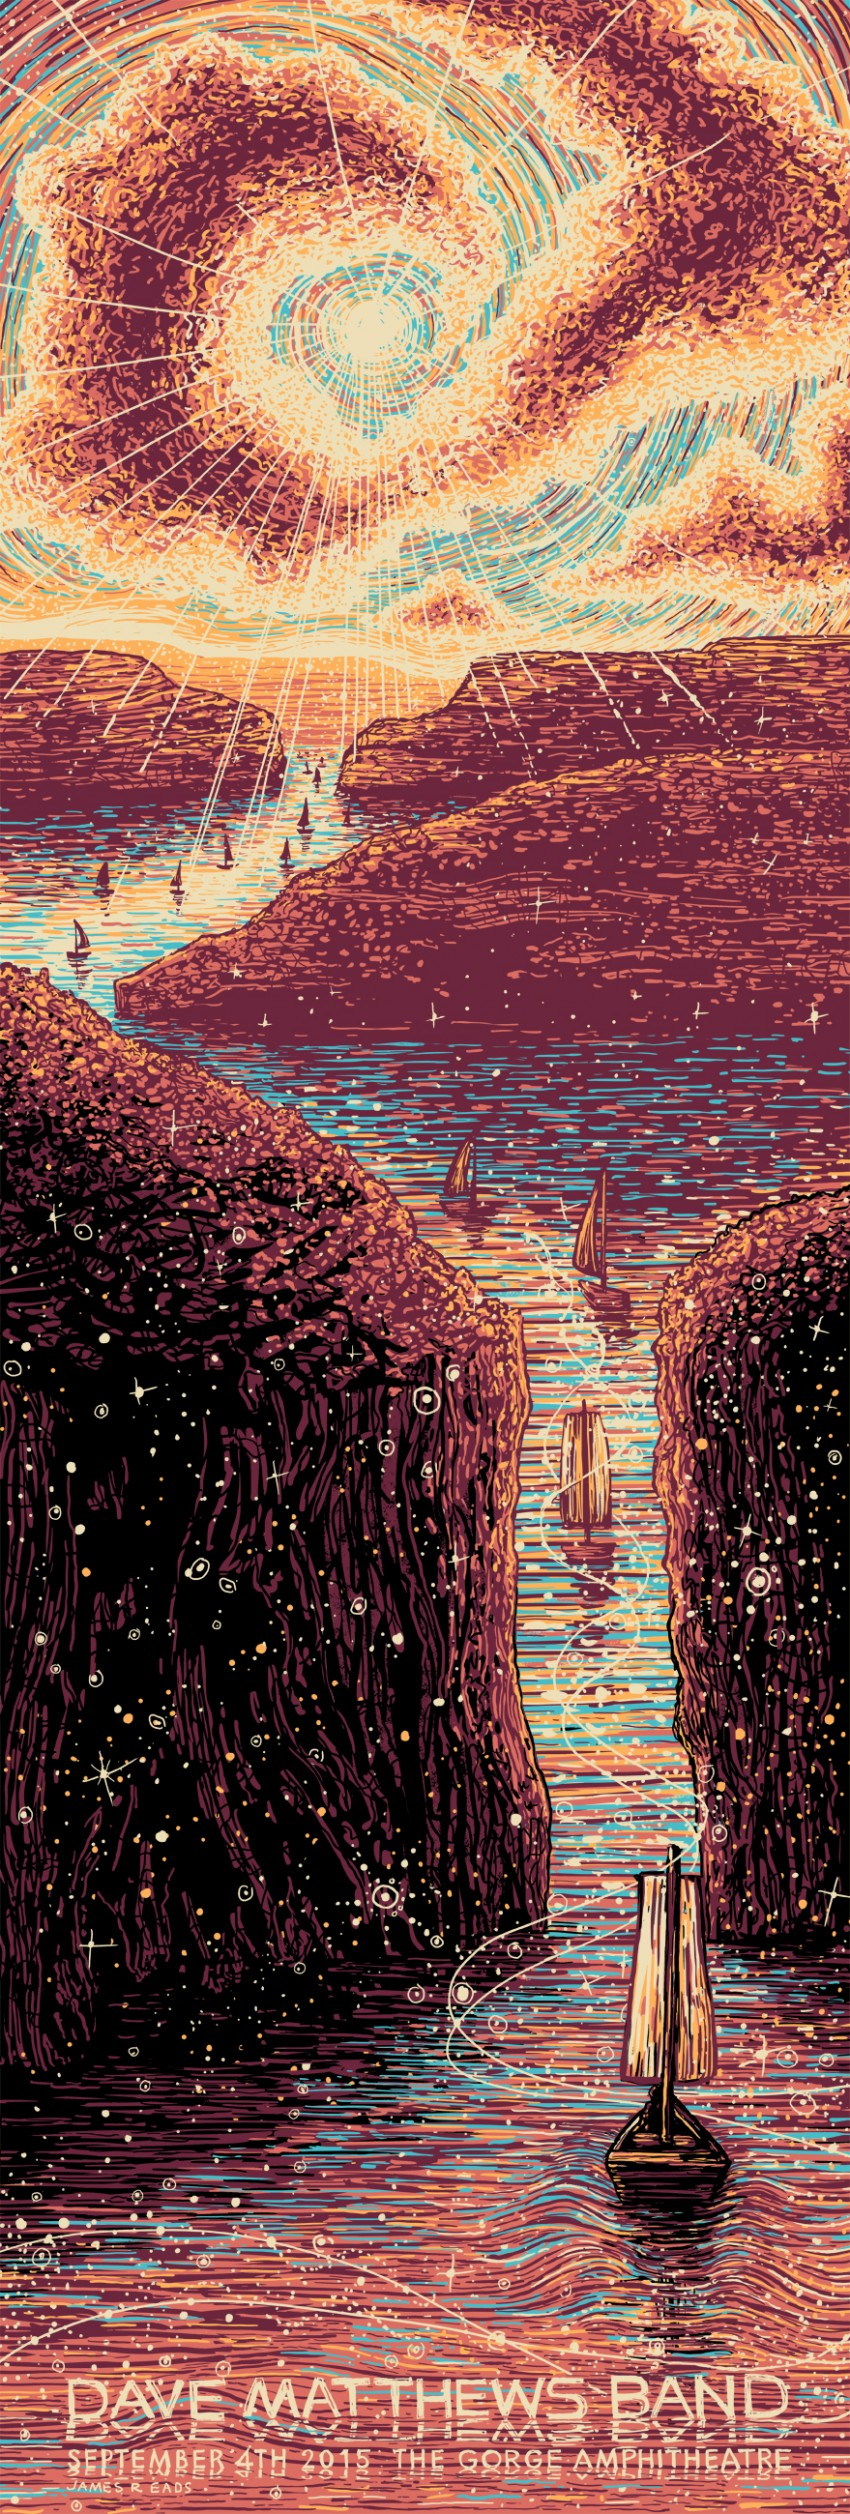 """Dave Matthews Band - Quincy, WA 2015"" by James R Eads.  12"" x 36"" 5-color Screenprint.  AP edition of 120 S/N.  $75"